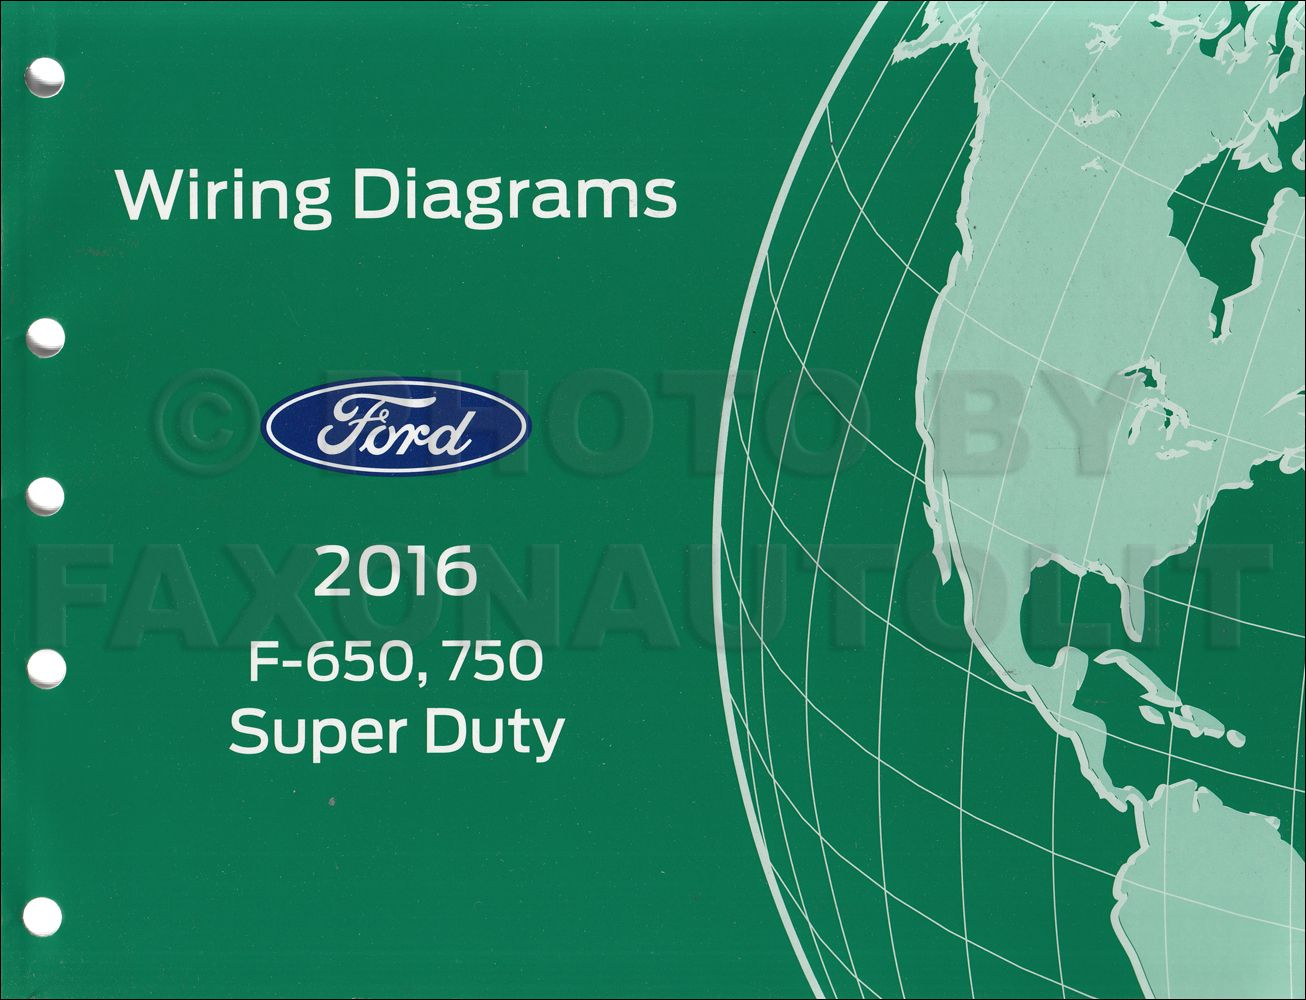 System Diagram View Diagram F650 Abs Faq Ford F650 Wiring Diagram